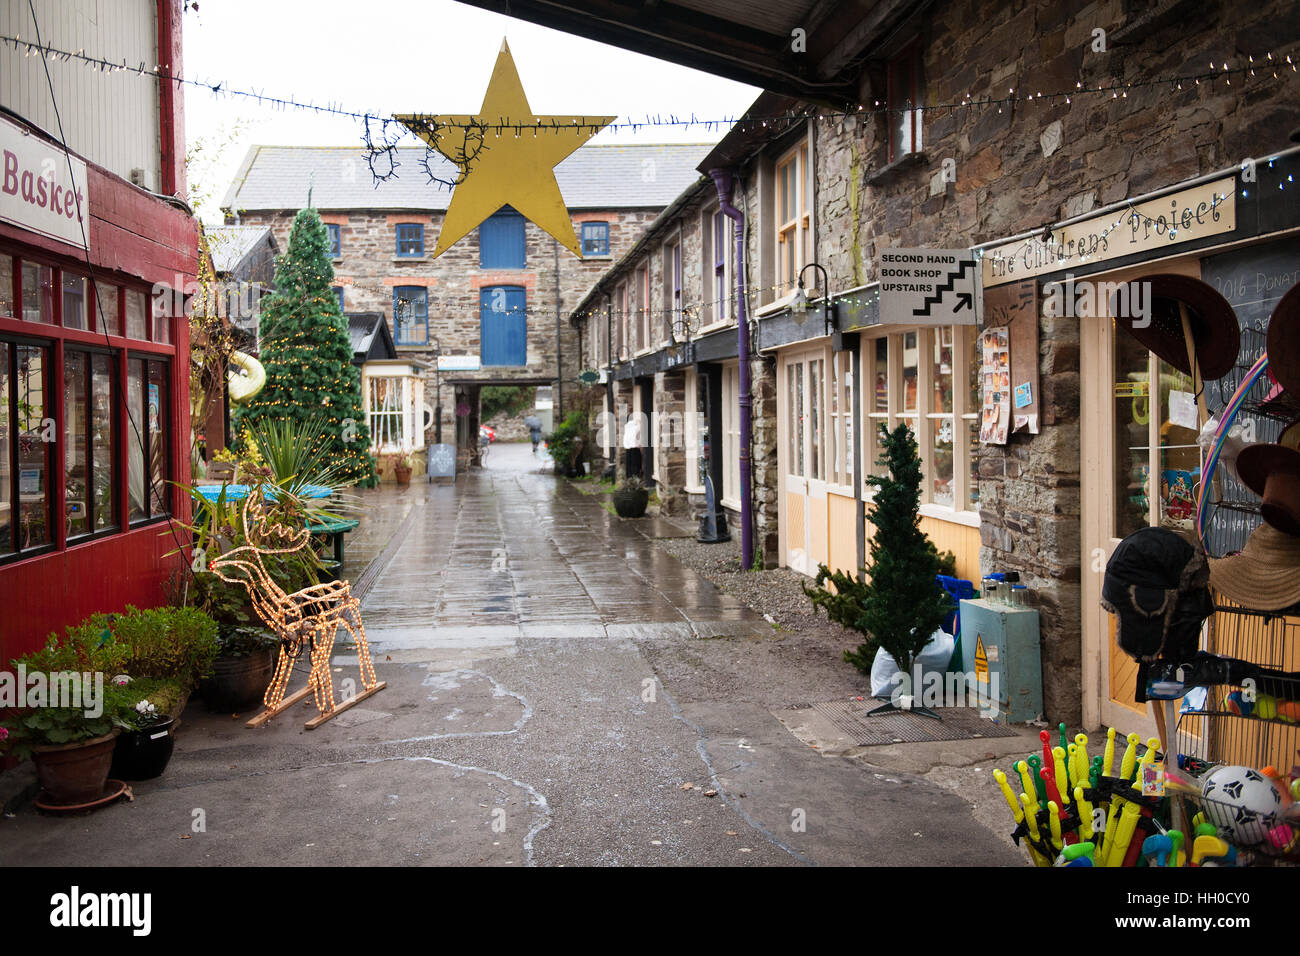 Spillers Lane shopping area in Clonakilty, West Cork, Ireland - Stock Image